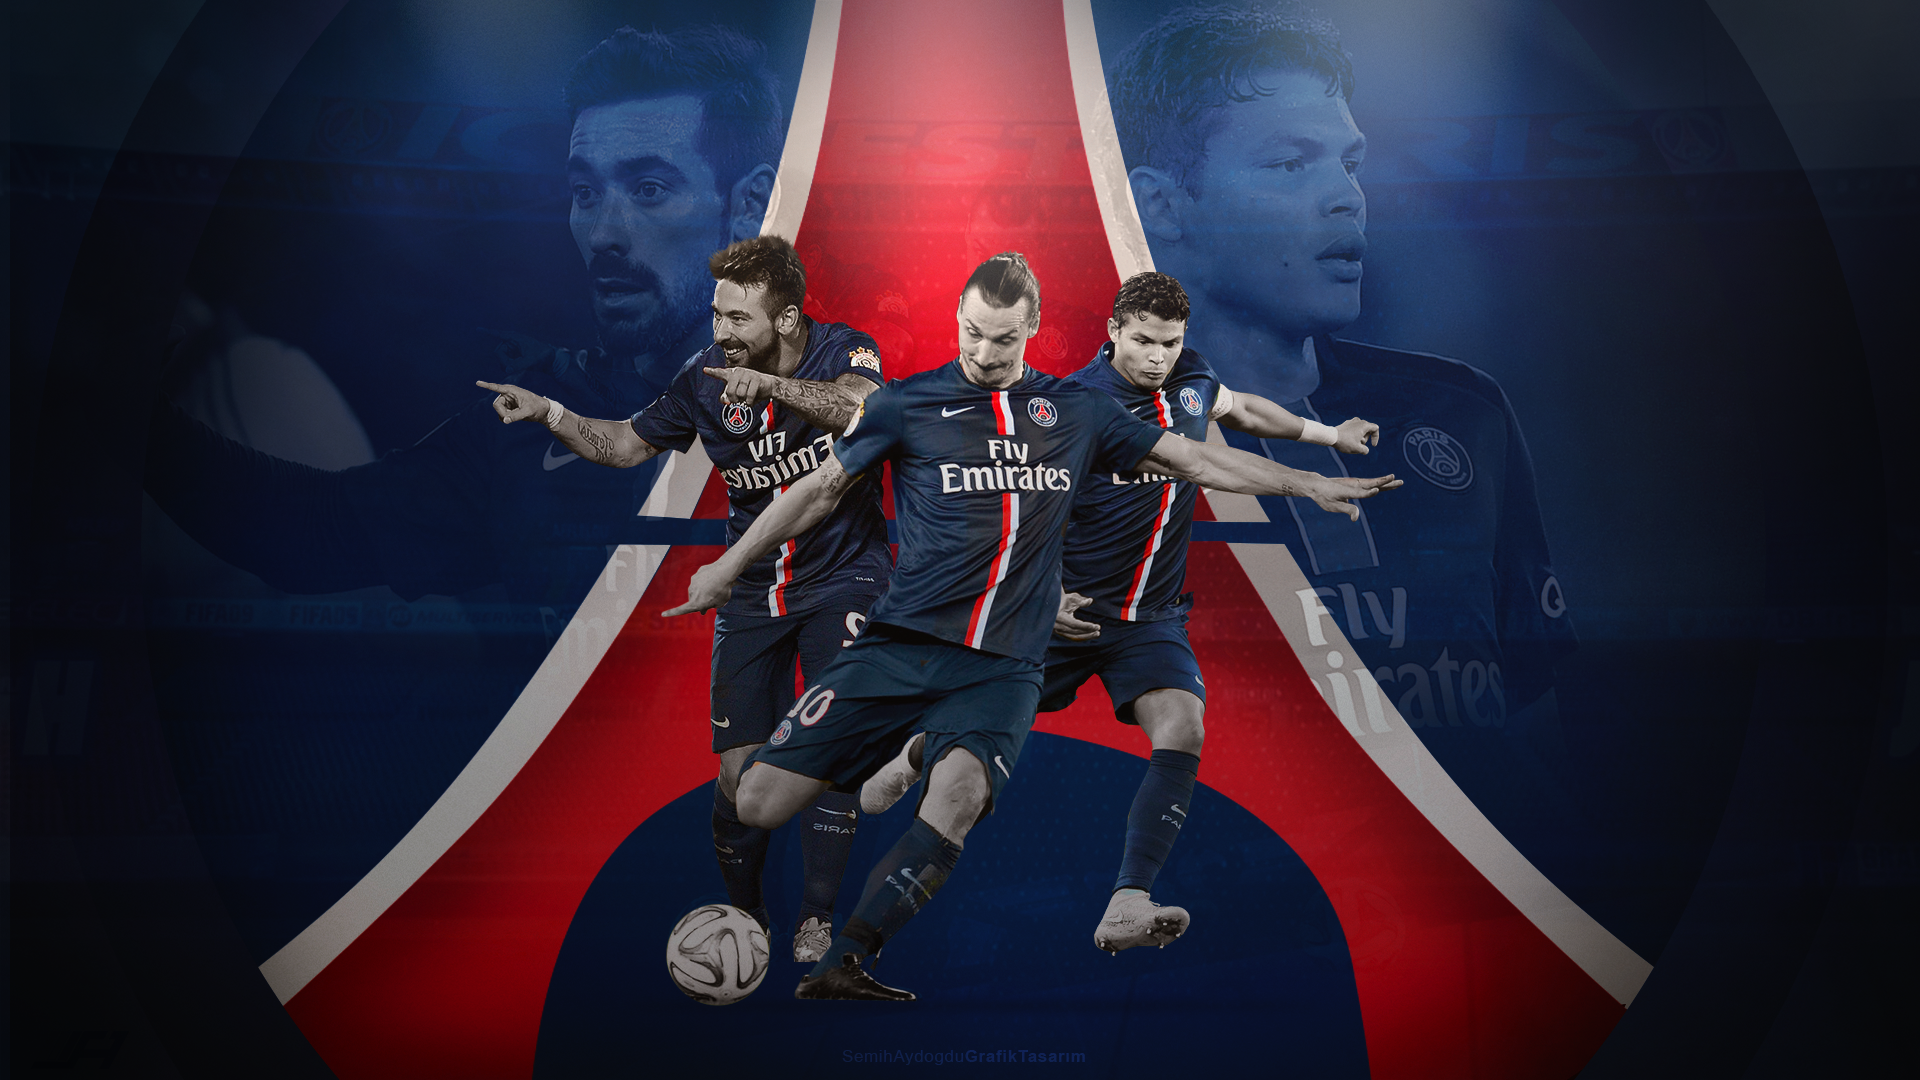 Paris Saint Germain Wallpaper By Semihaydogdu On Deviantart